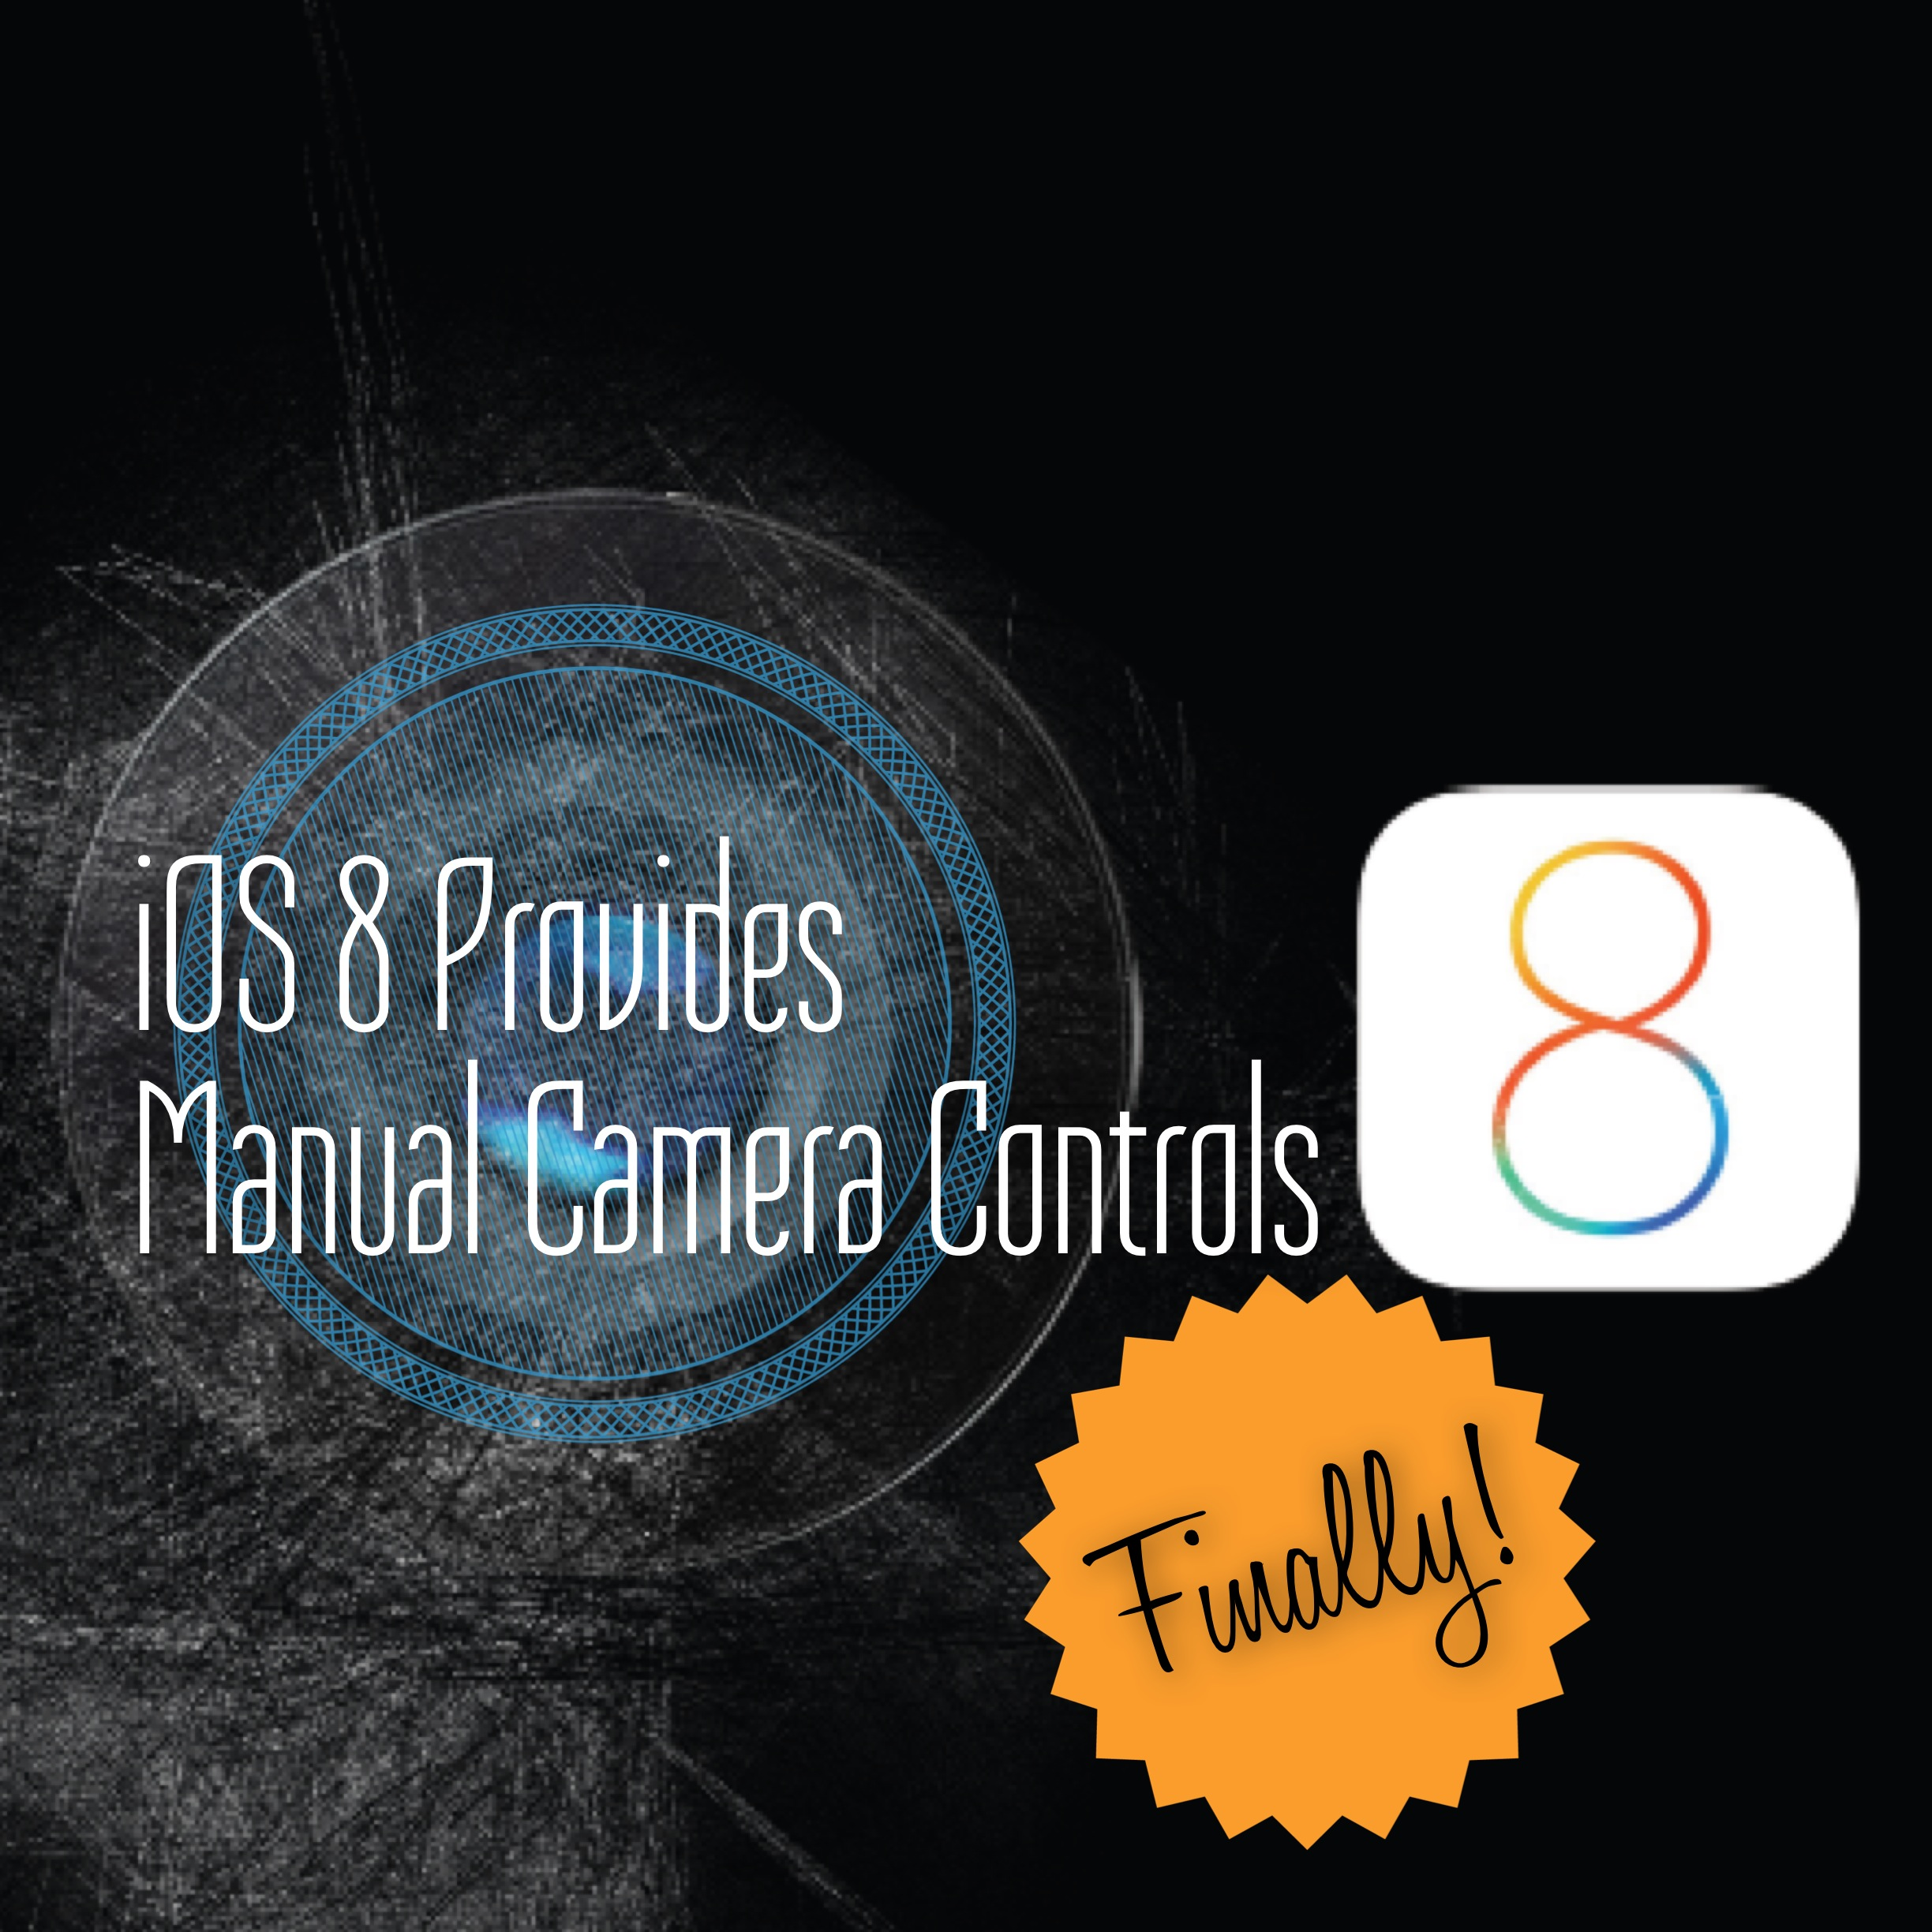 iOS8 provides Manual Camera Controls